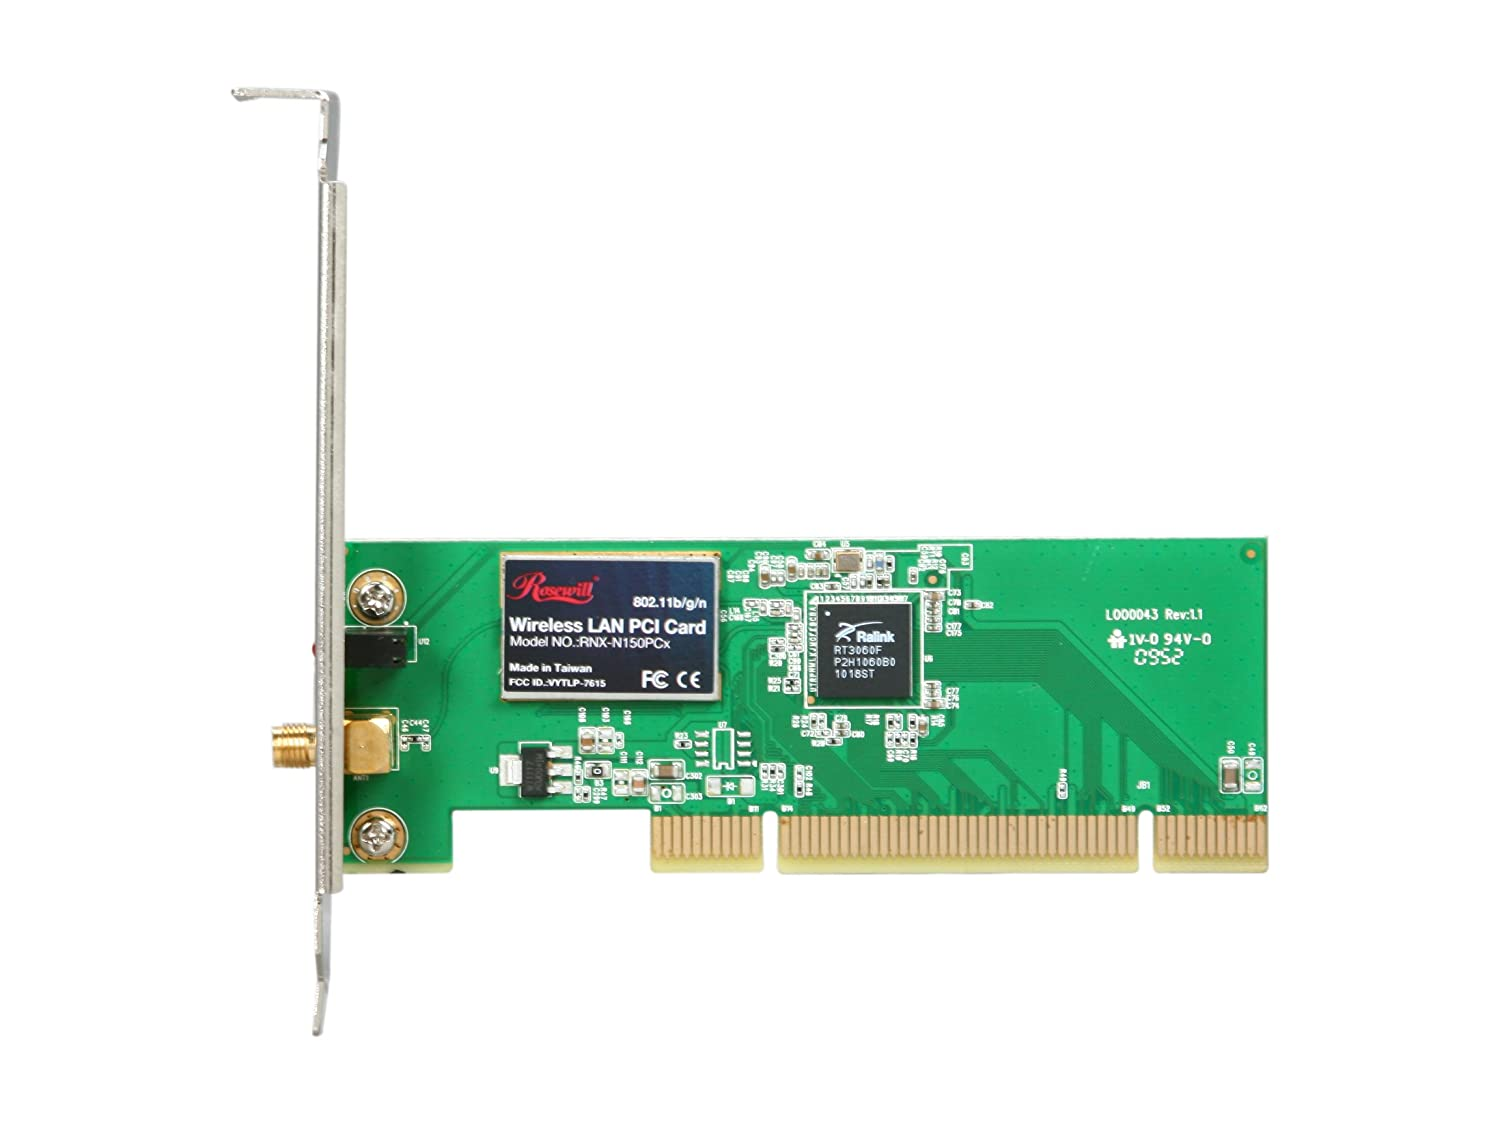 Rosewill RNX-N300 Wireless PCI Adapter Ralink WLAN Linux